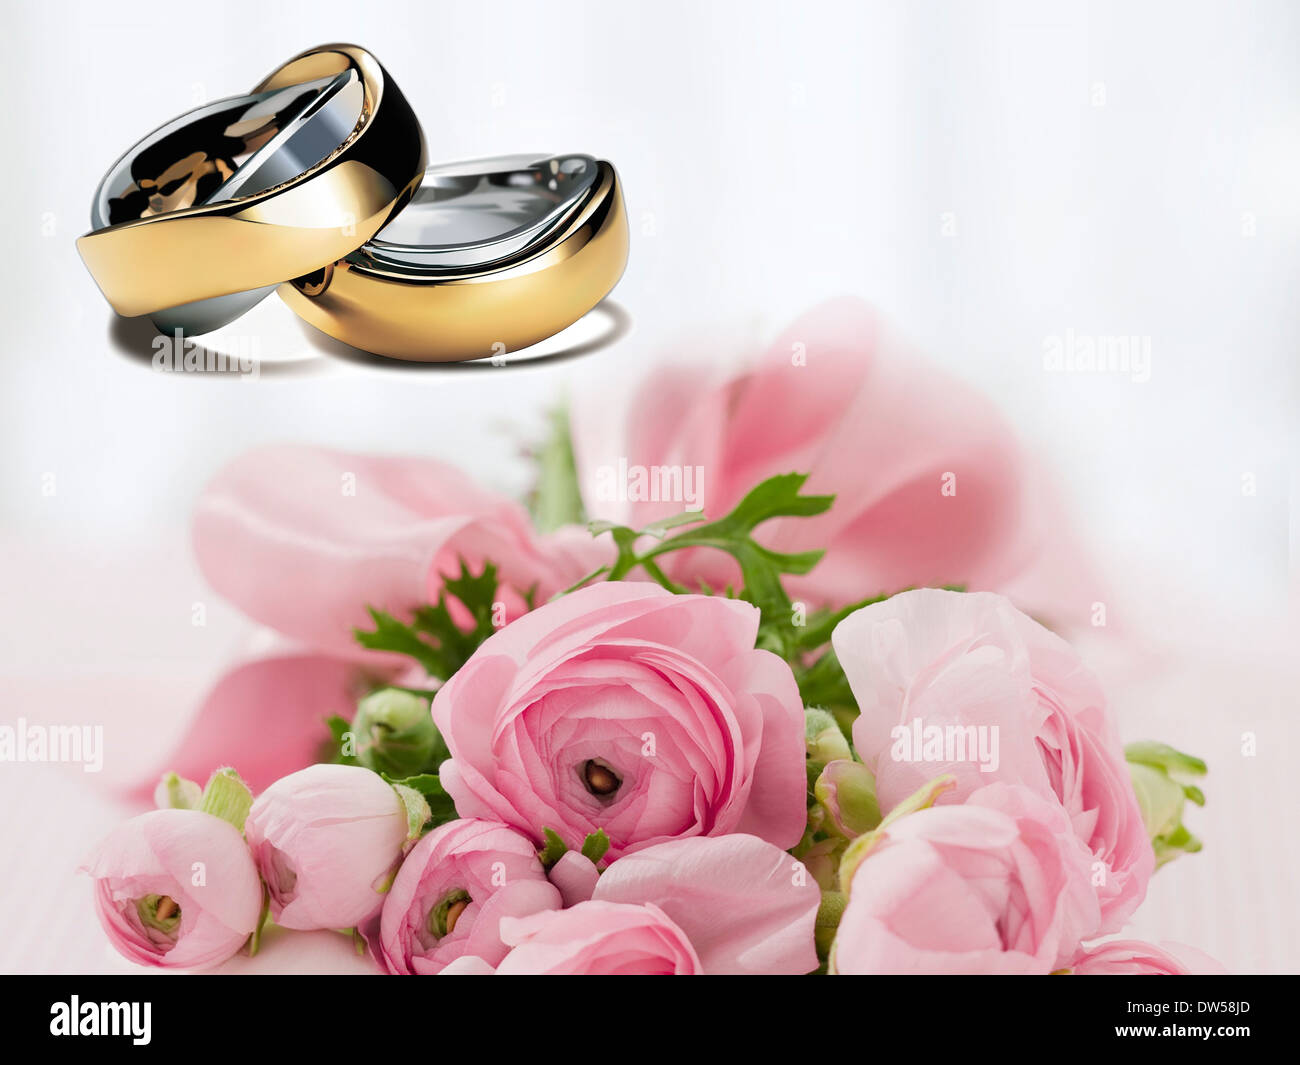 wedding rings wedding before love marry gold Stock Photo: 67114053 ...